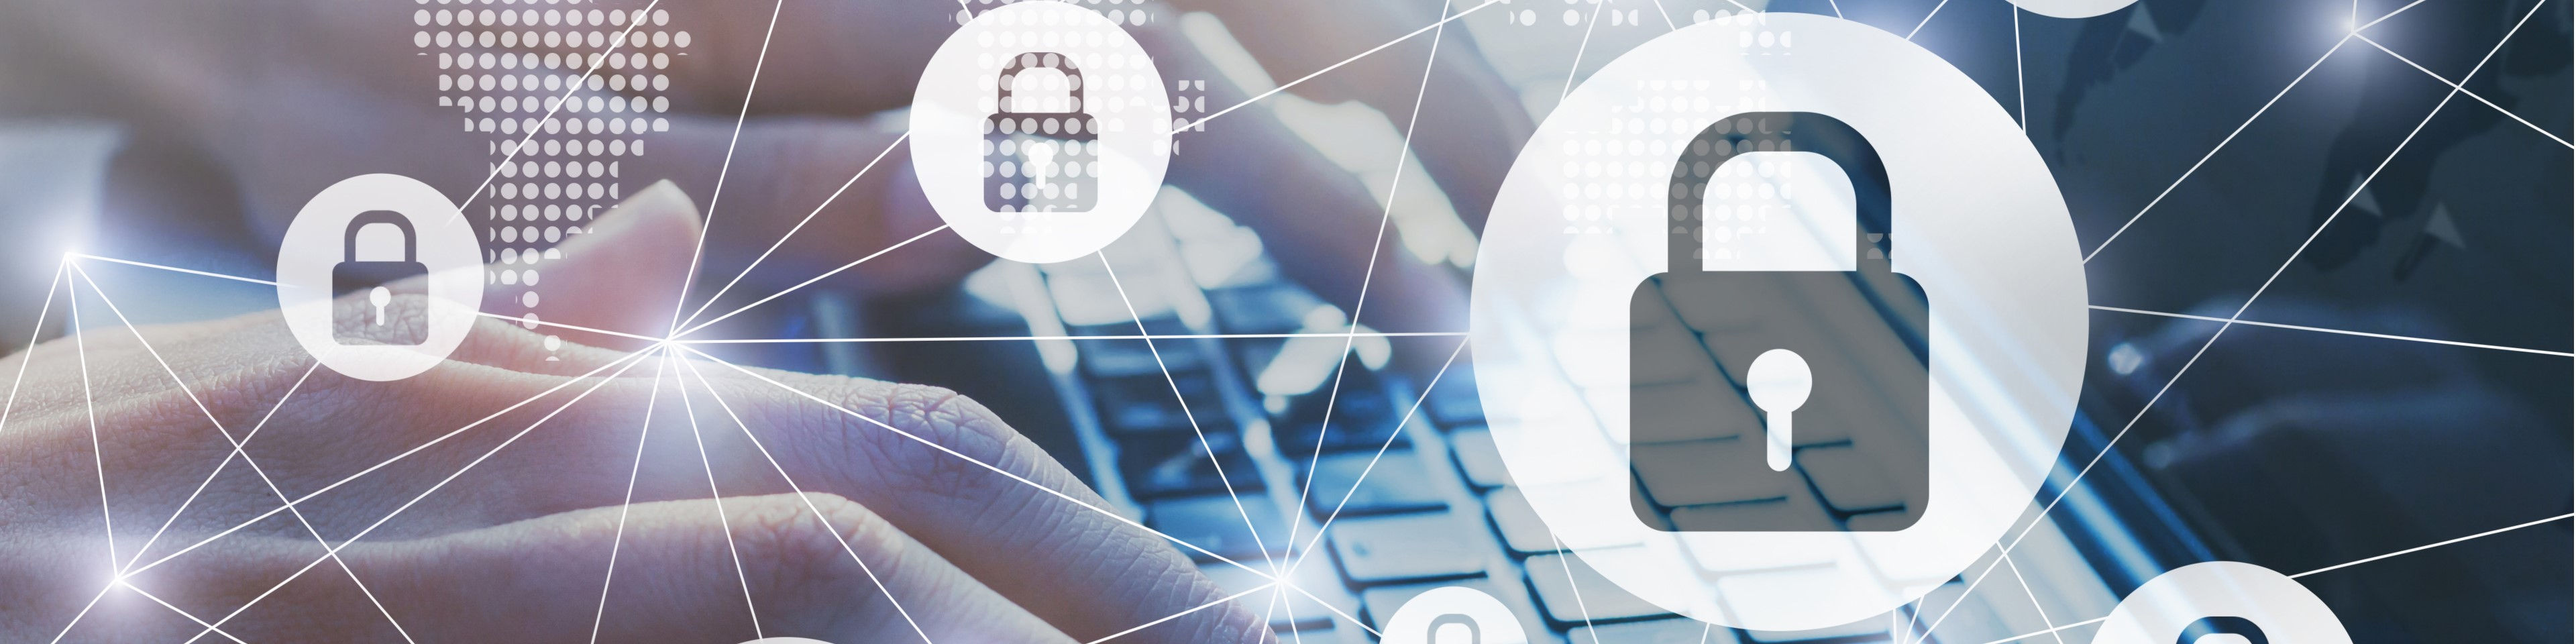 Protect Sensitive Accounting Firm and Client Data with Multi-Factor Authentication